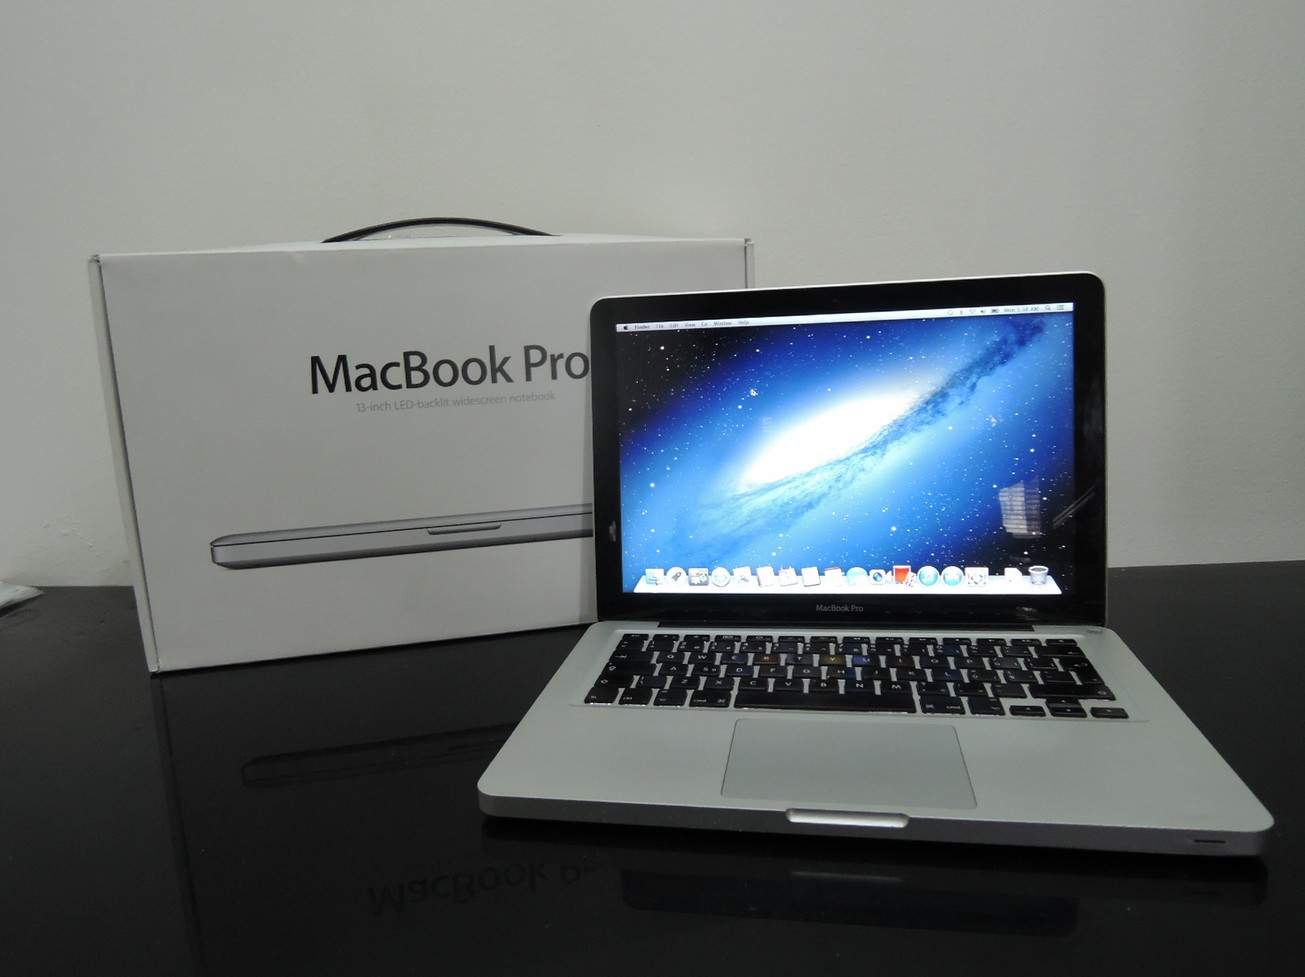 macbook pro quel vendeur propose la meilleure offre meilleur mobile. Black Bedroom Furniture Sets. Home Design Ideas